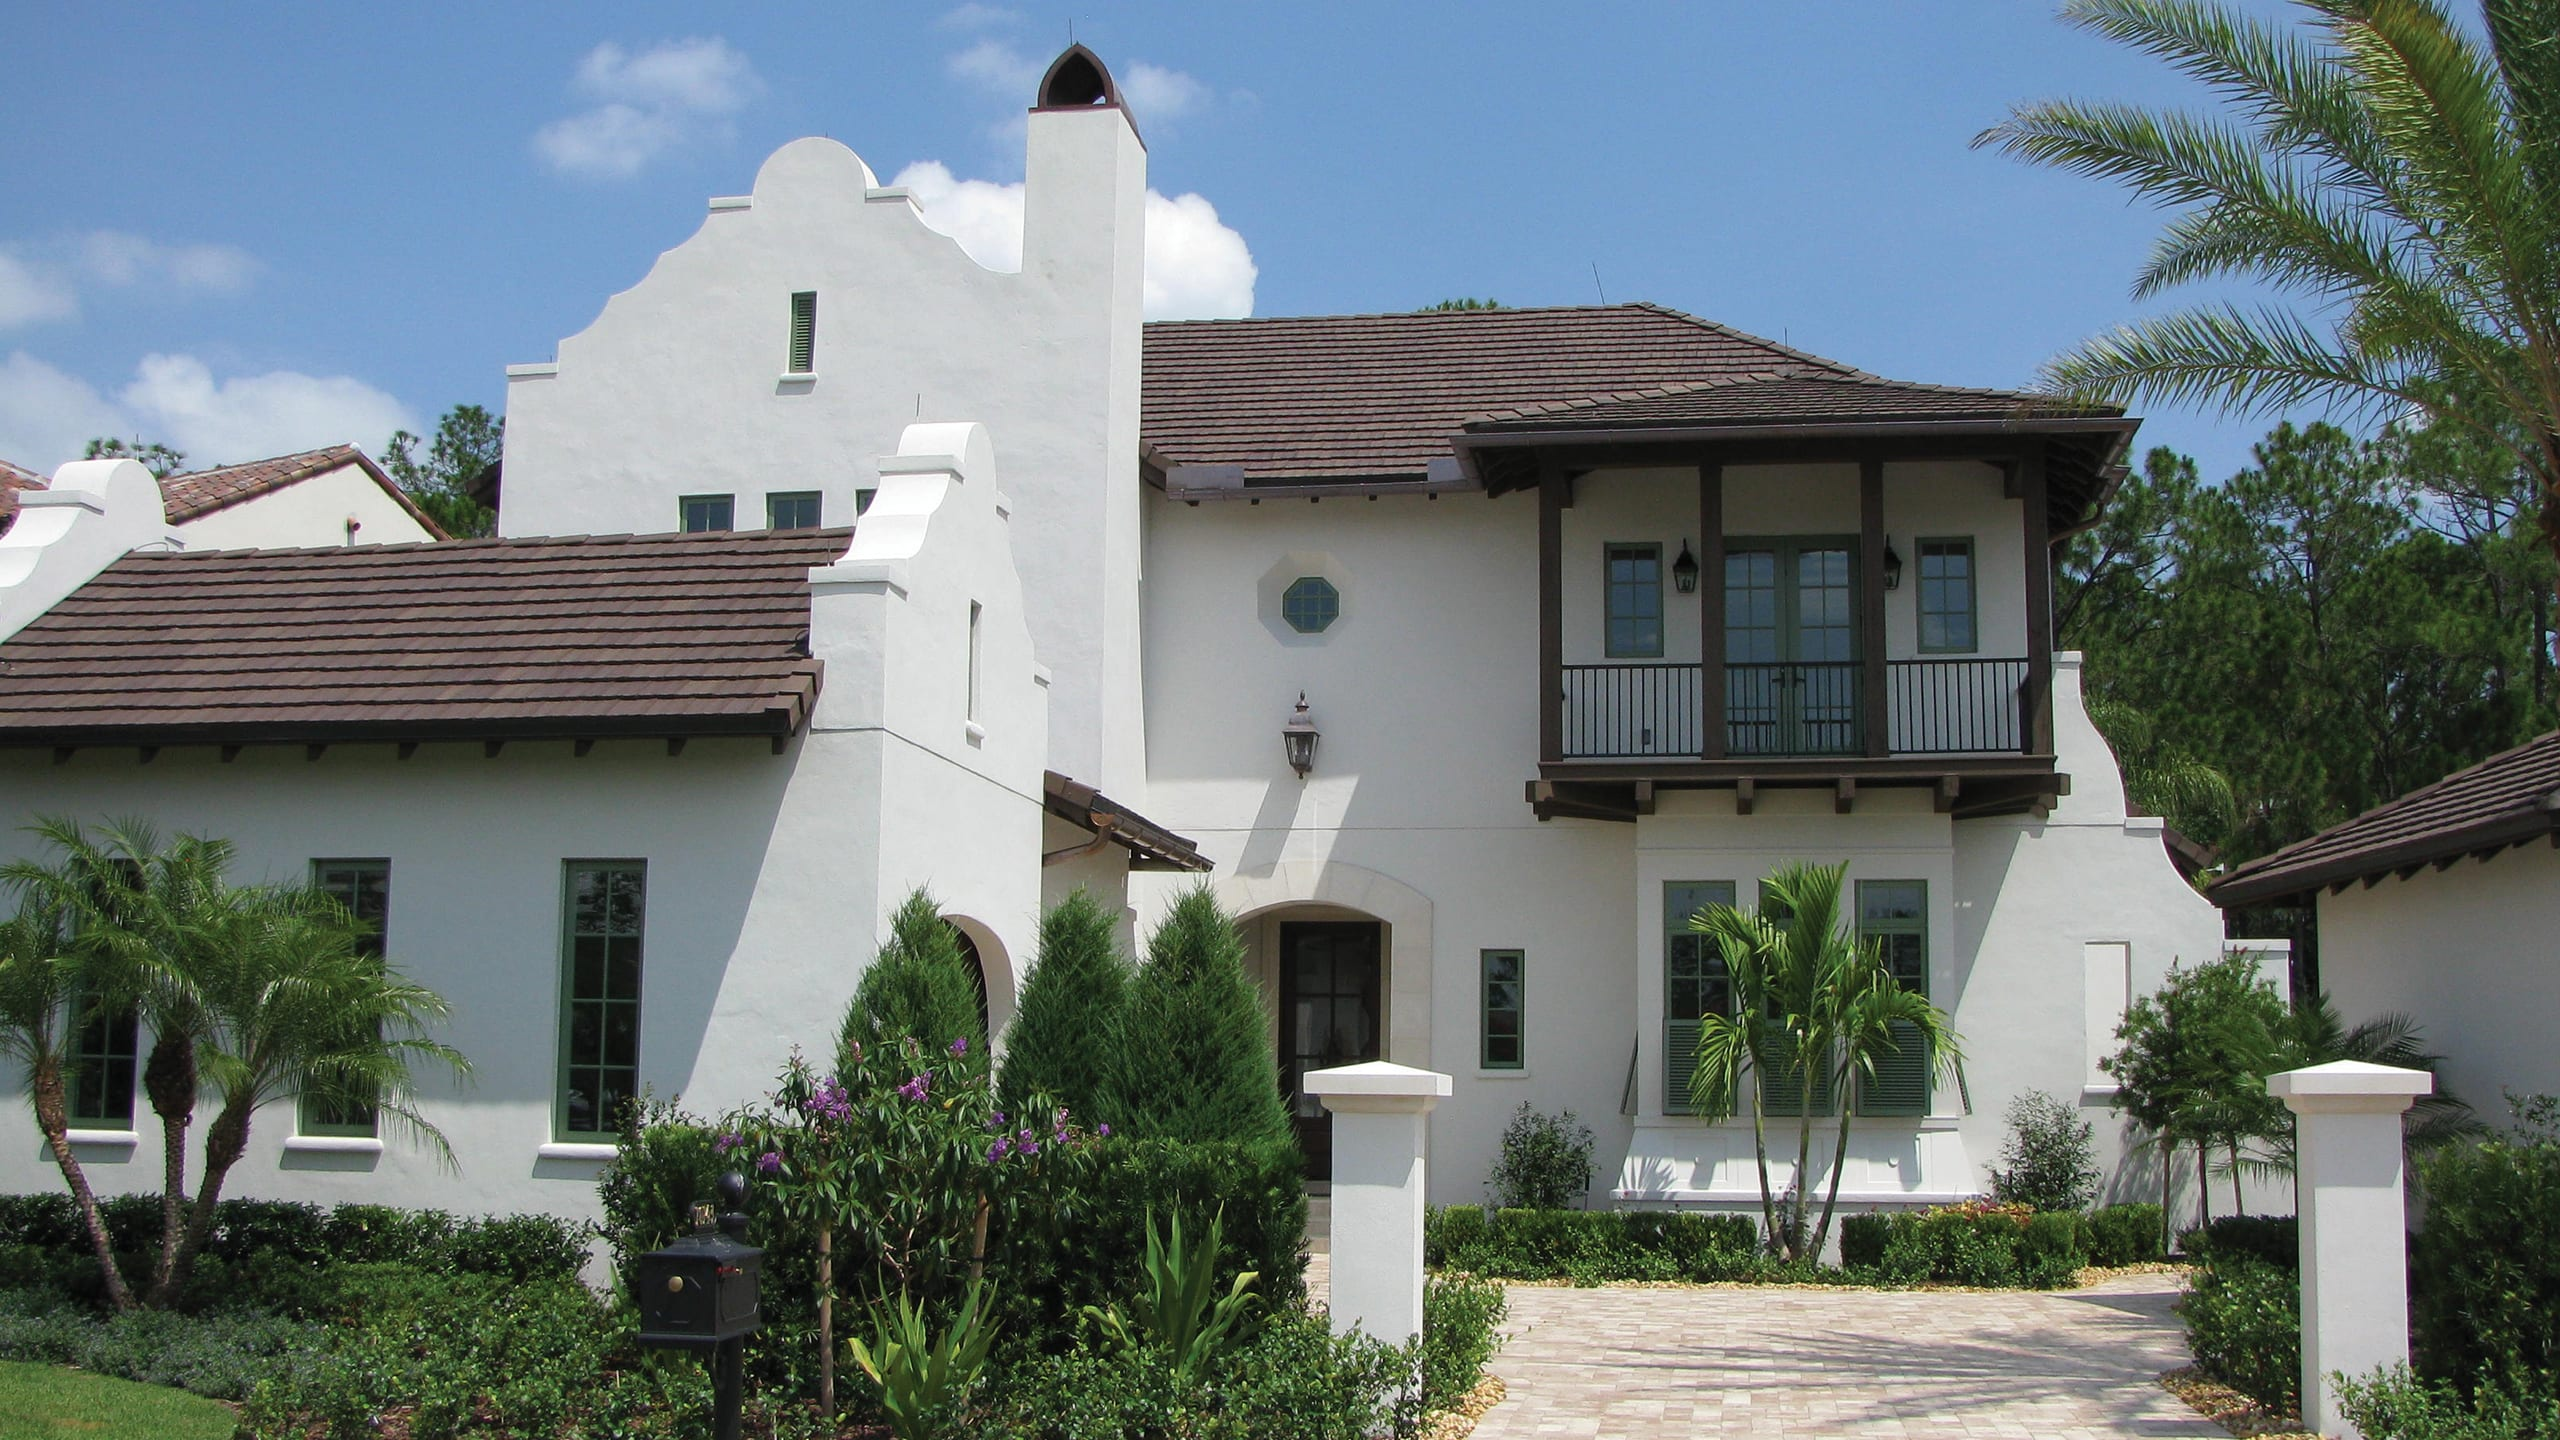 Private Residence - Orlando Ludowici Roof Tile